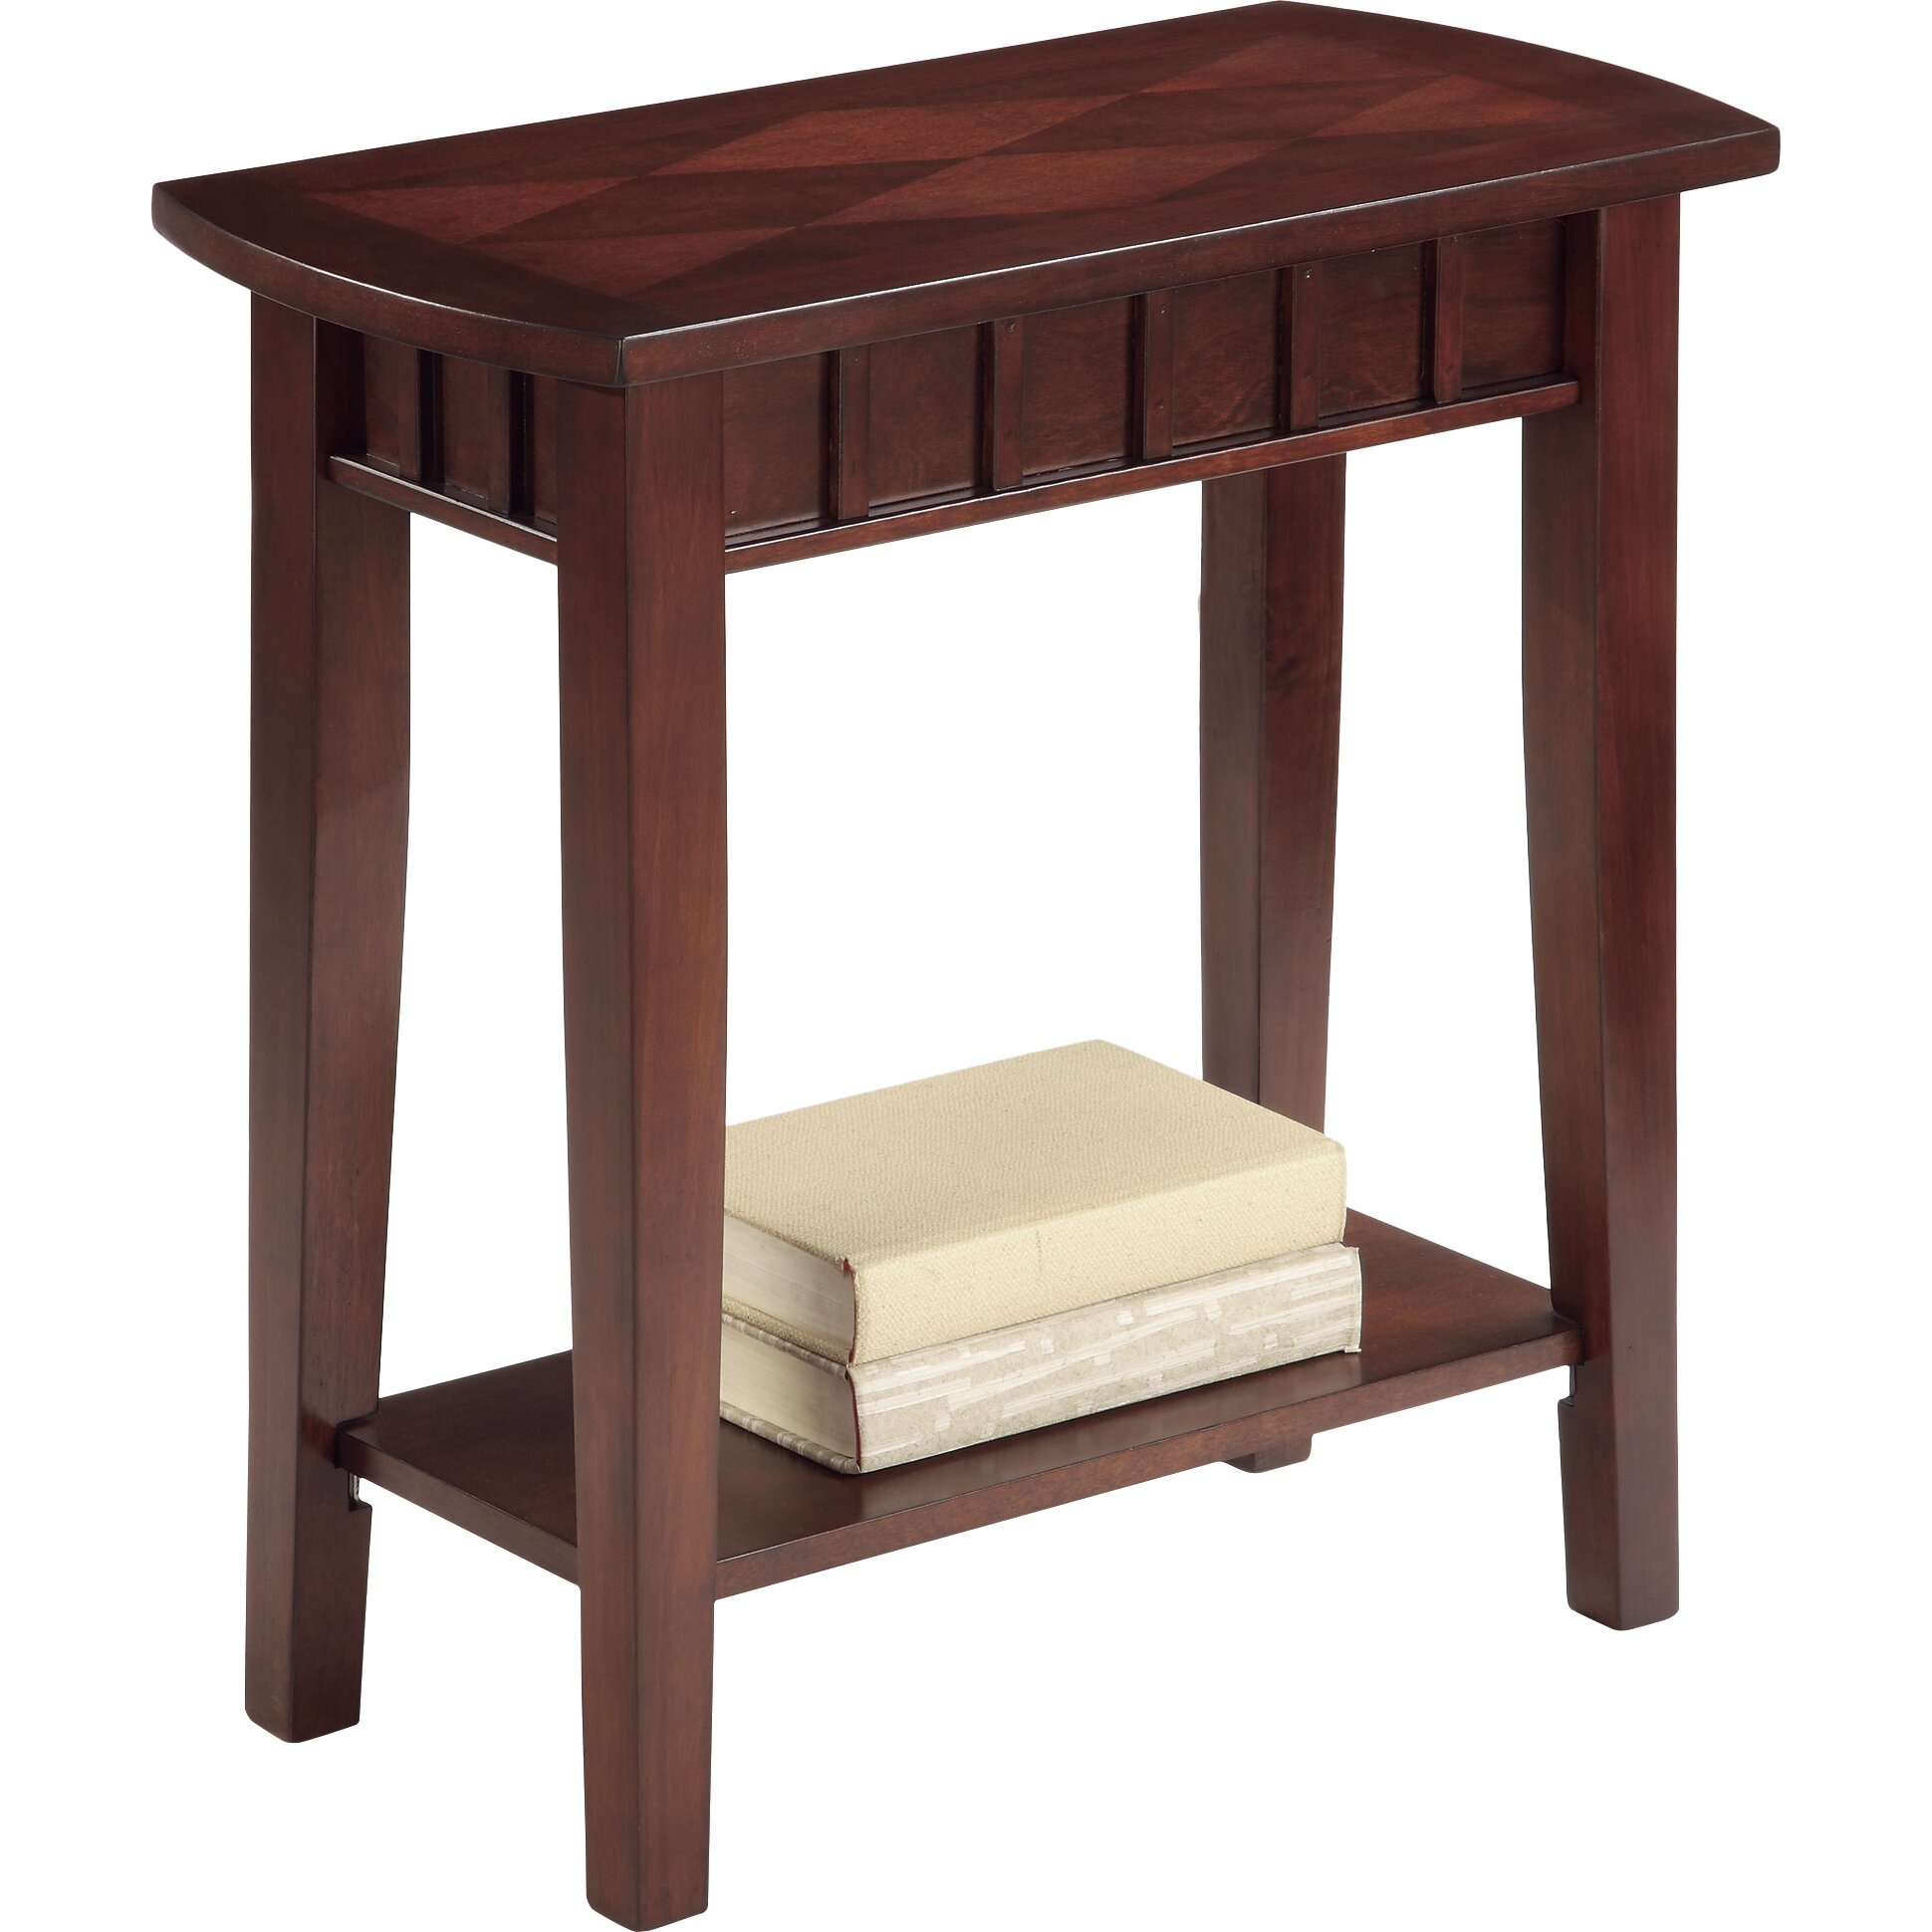 Crown mark dentil chairside table reviews wayfair for Markup table